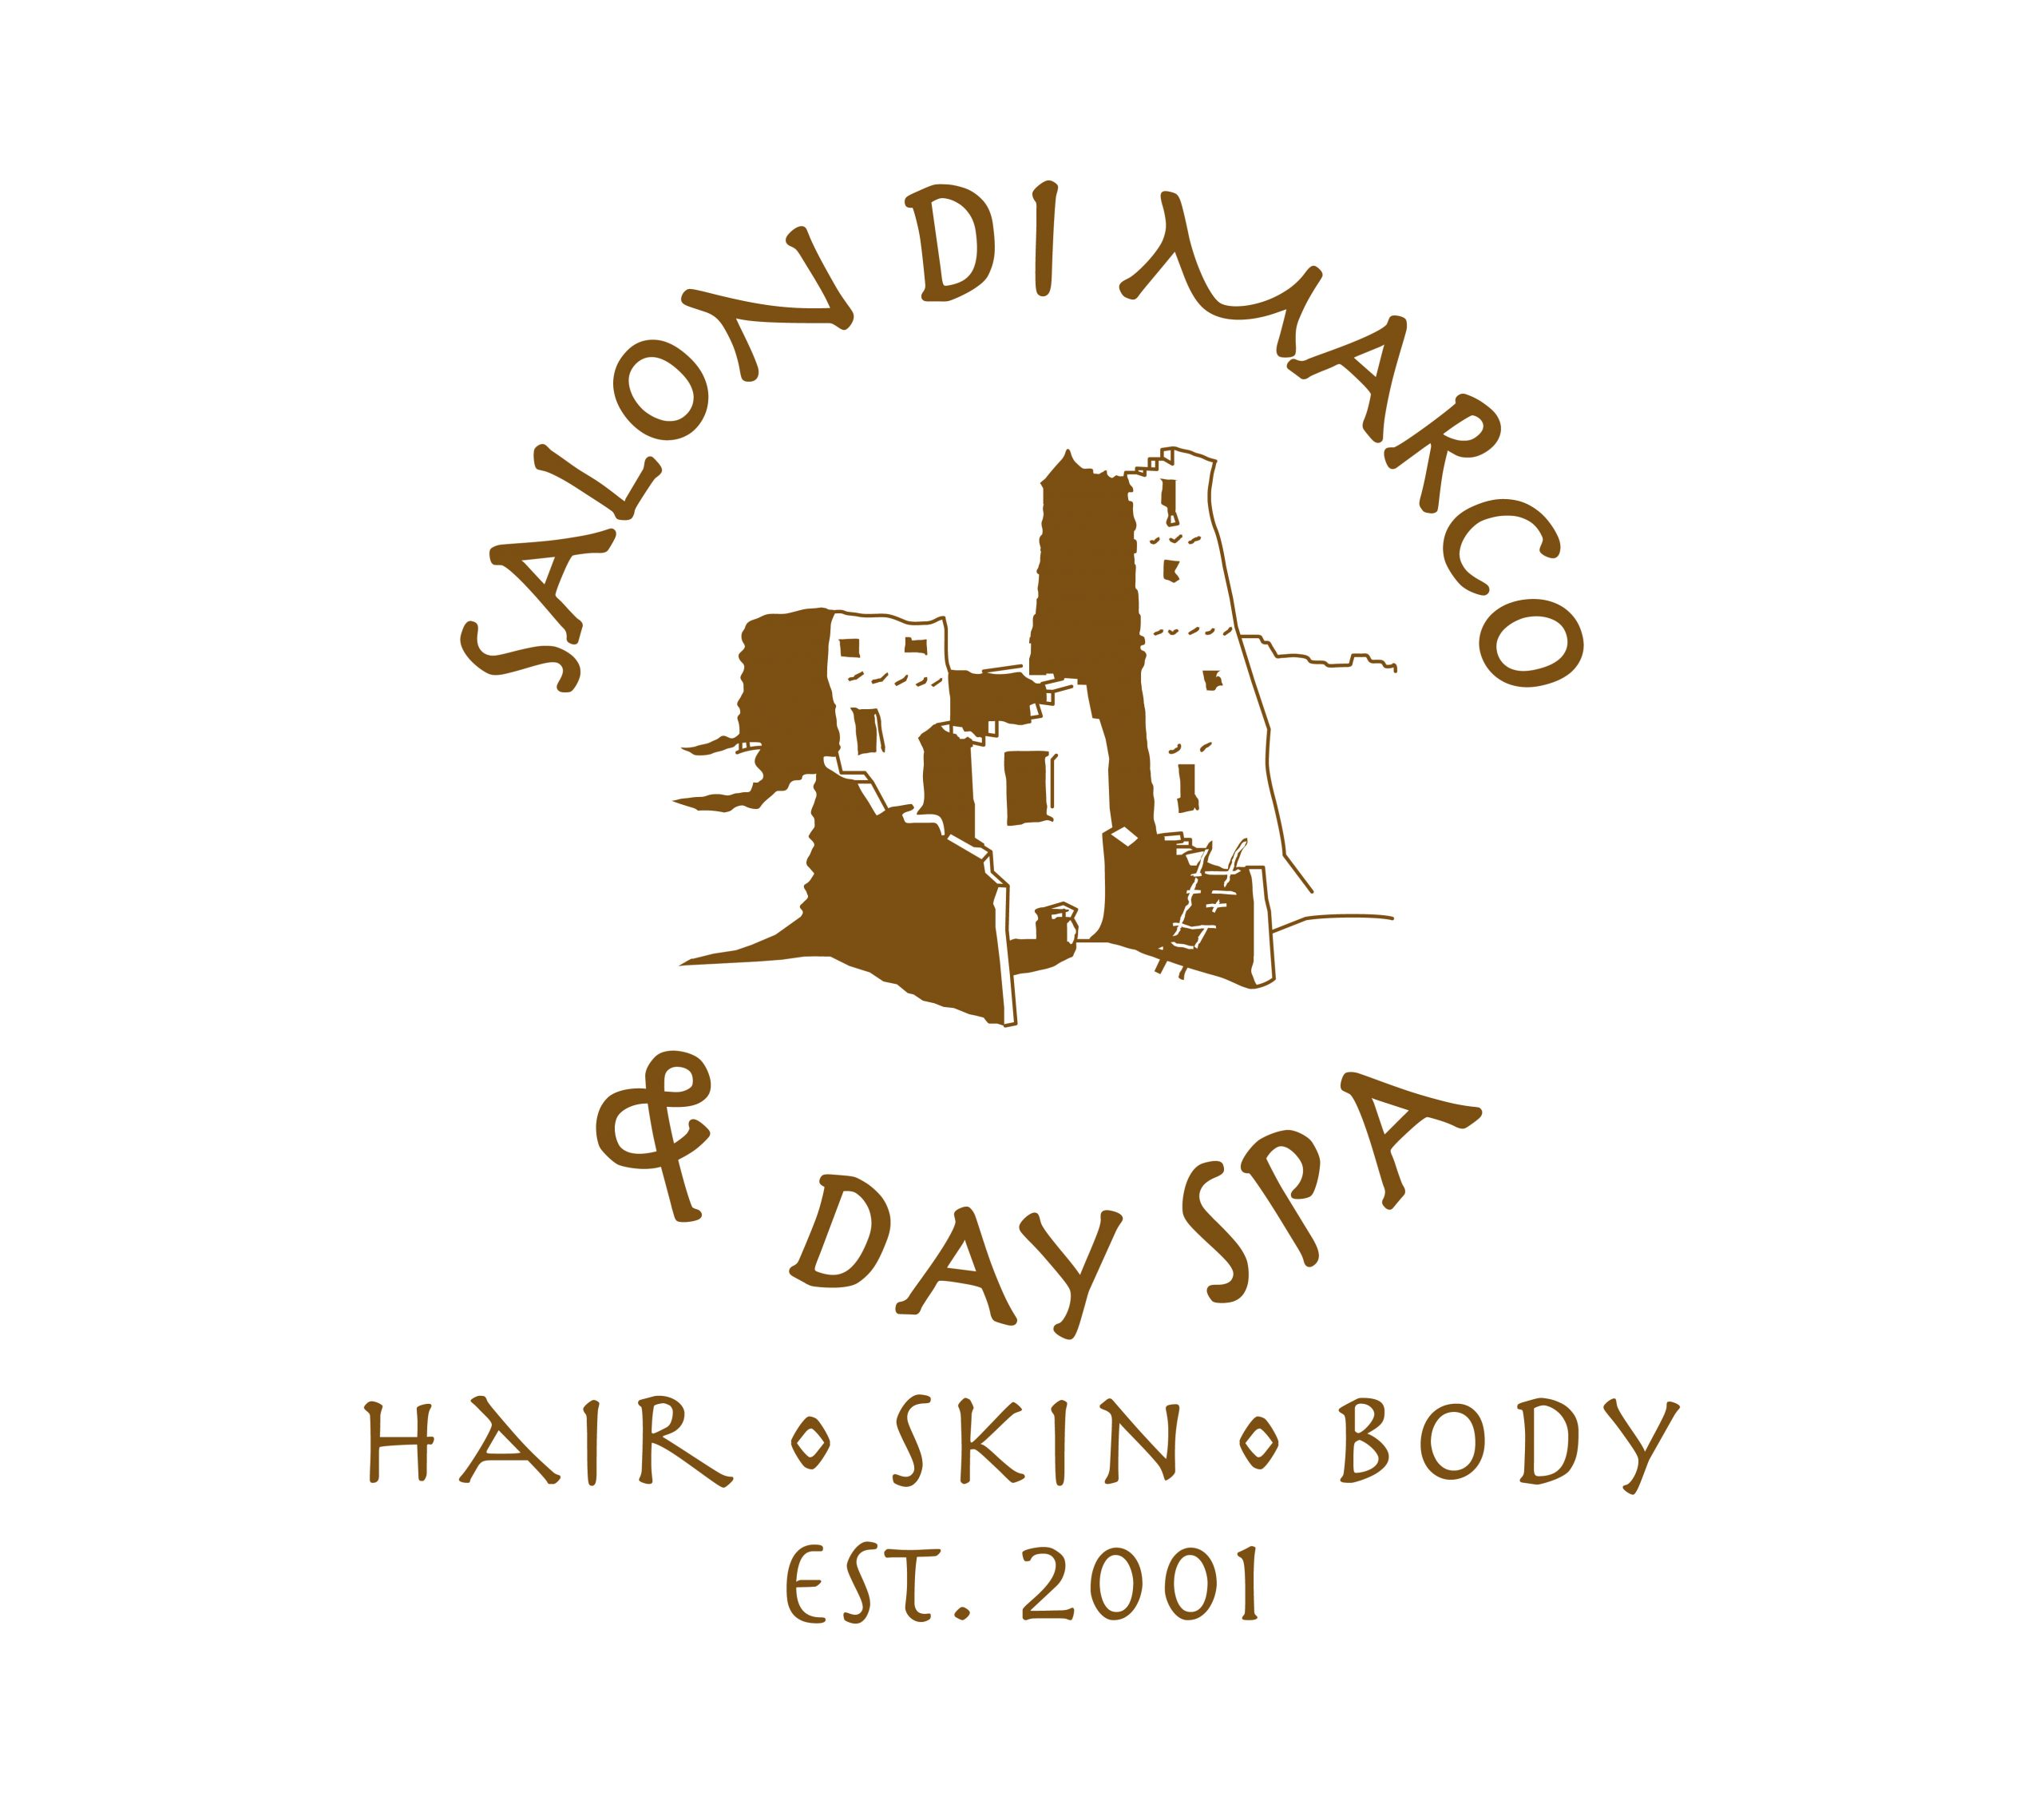 Salon Di Marco & Day Spa